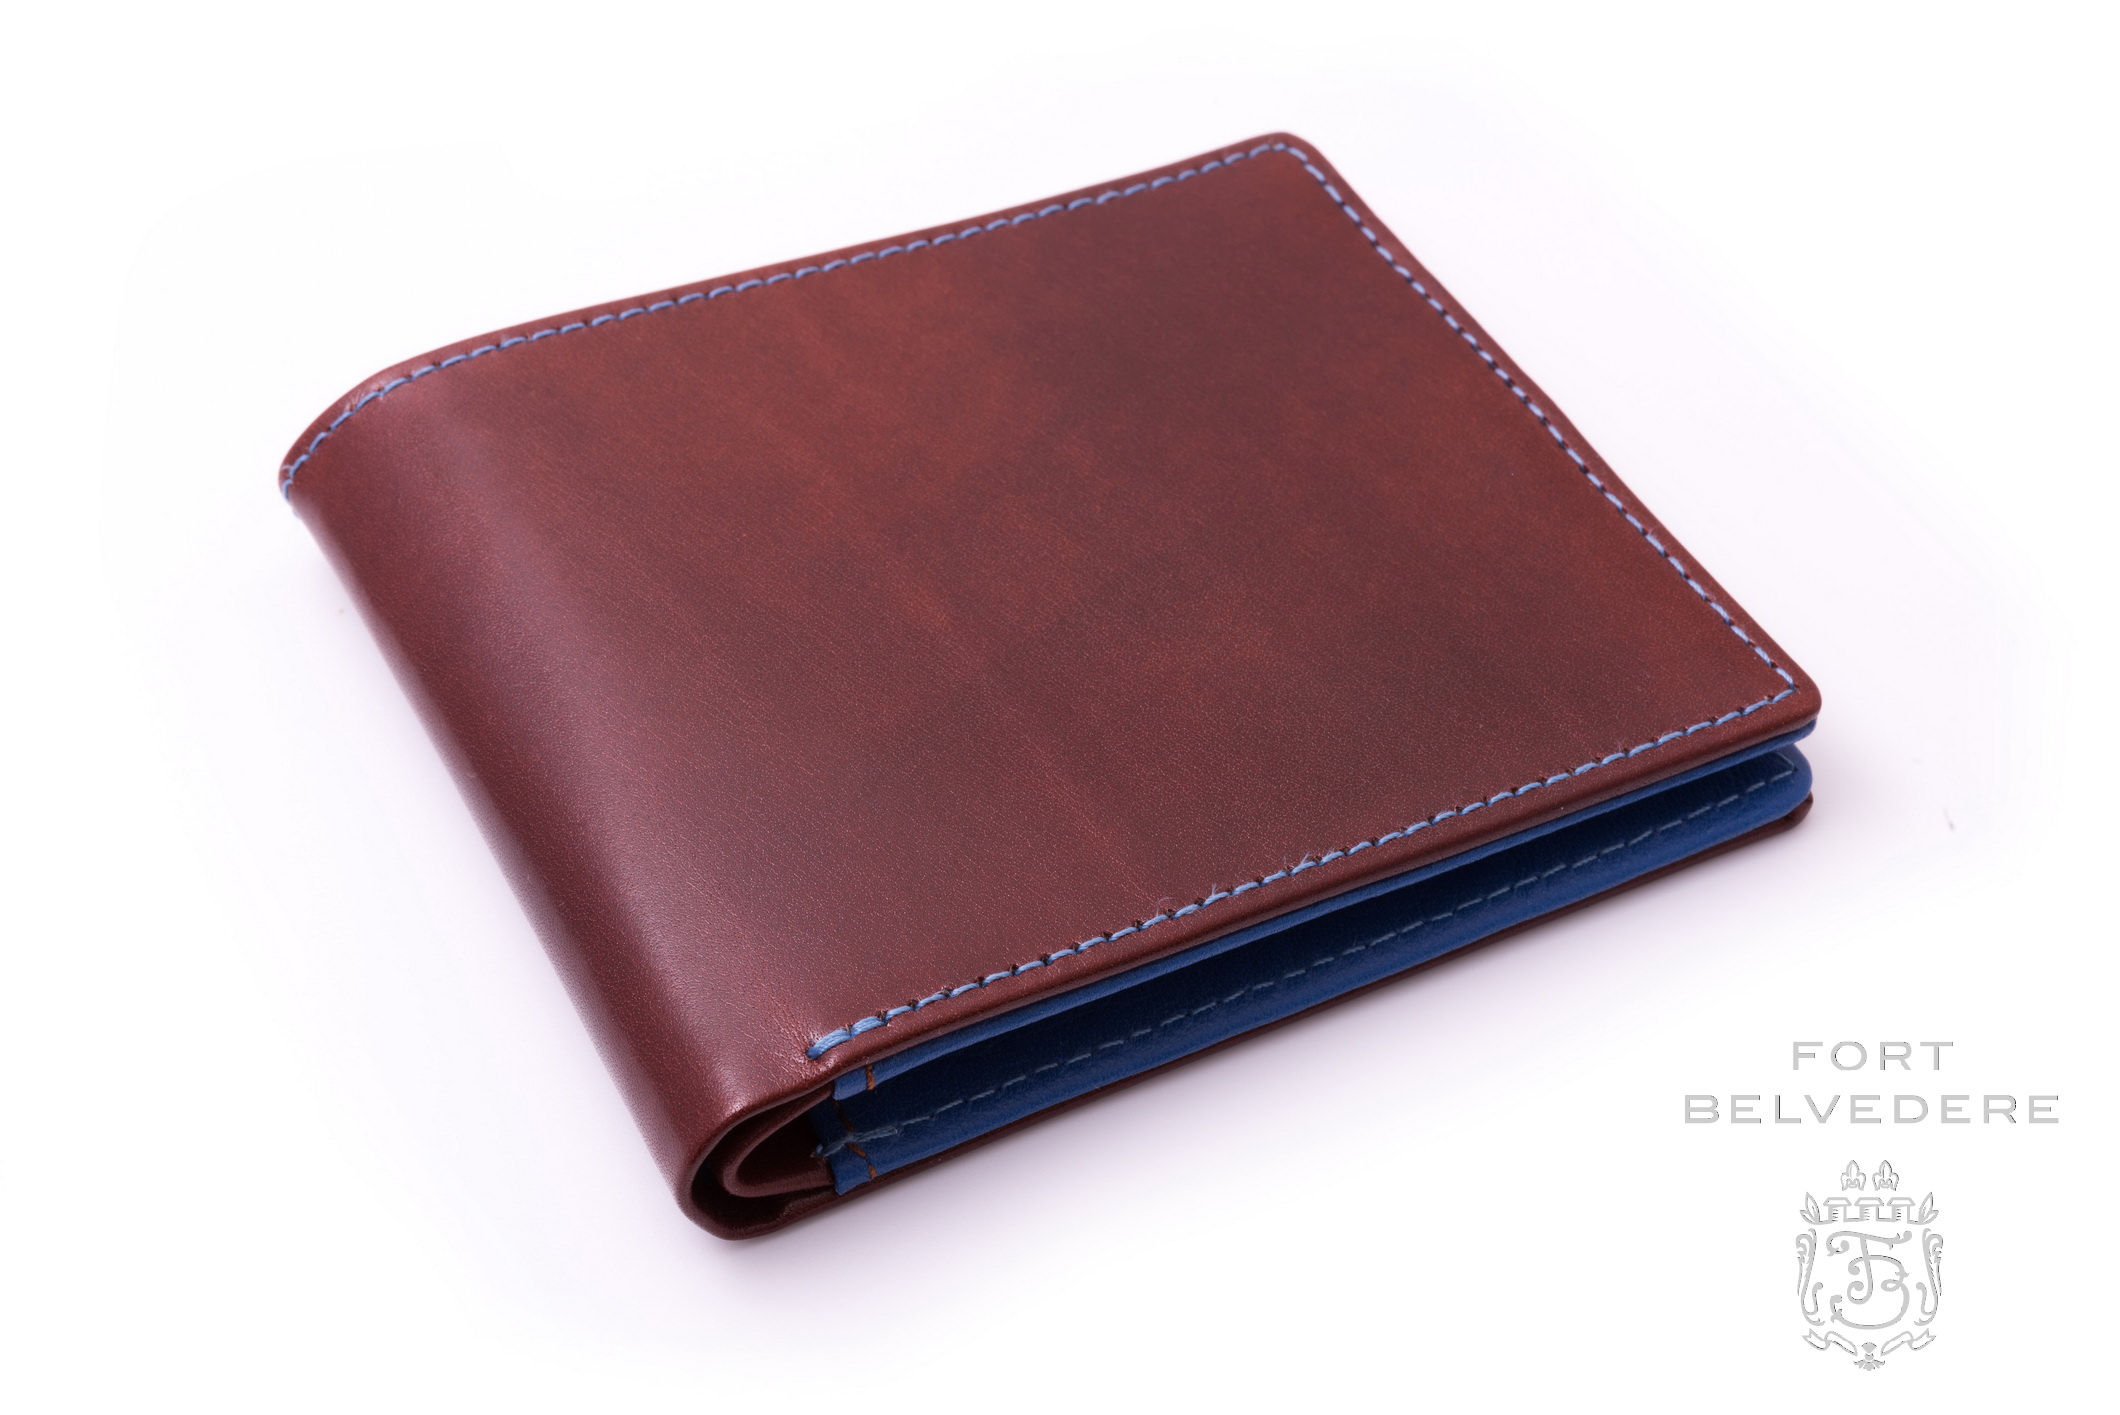 Luxury Men's Leather Wallet in Whisky Patina Brown Boxcalf & Blue ...